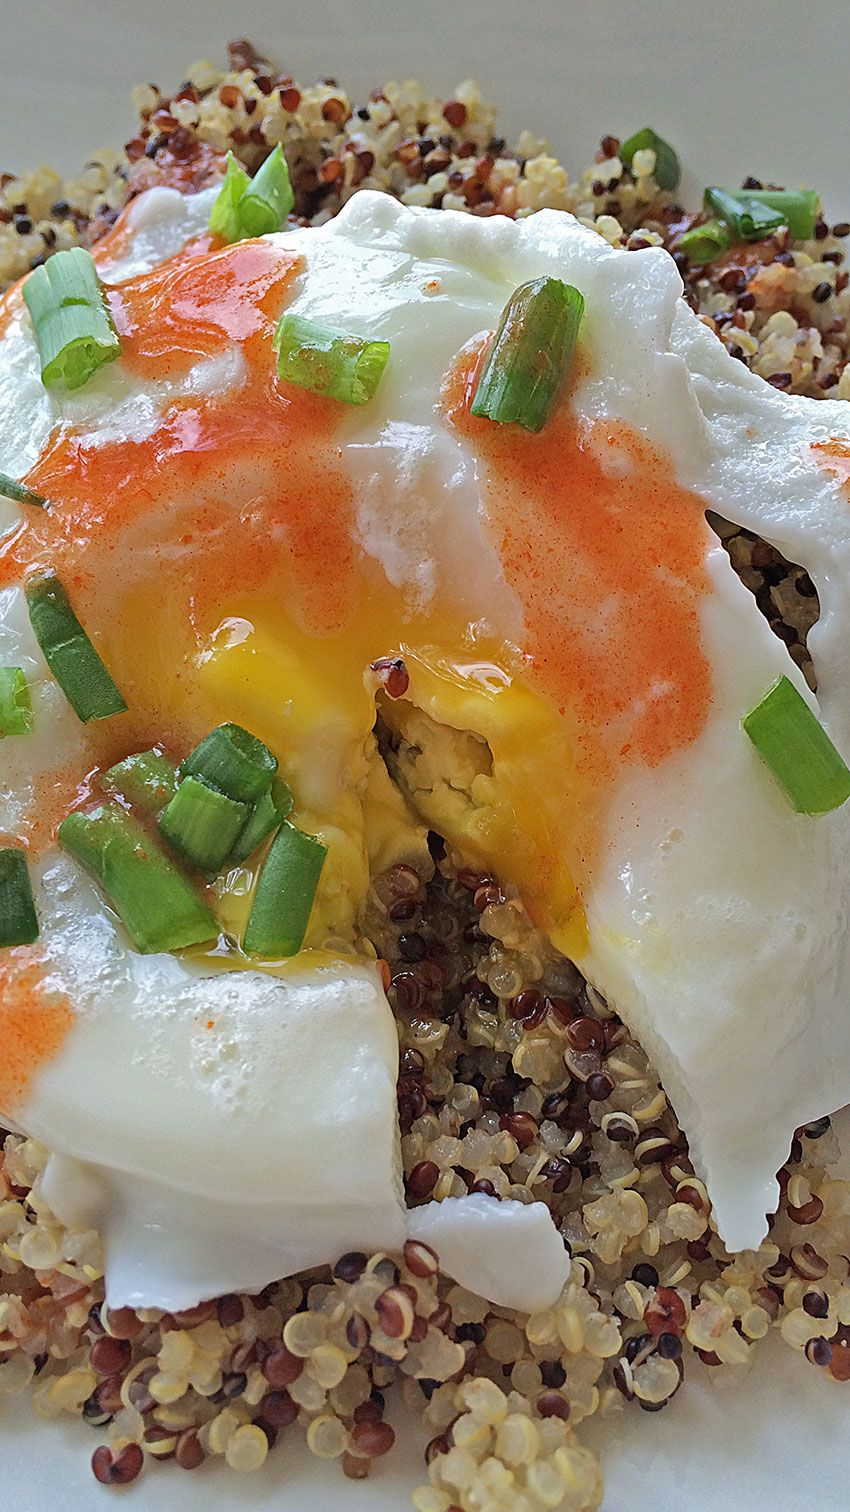 Poached egg quinoa breakfast todays moxie healthy breakfast ideas todays moxie offers recipes for foodies do it yourself craft projects and decorating ideas and other tips for being the best version of yourself solutioingenieria Image collections